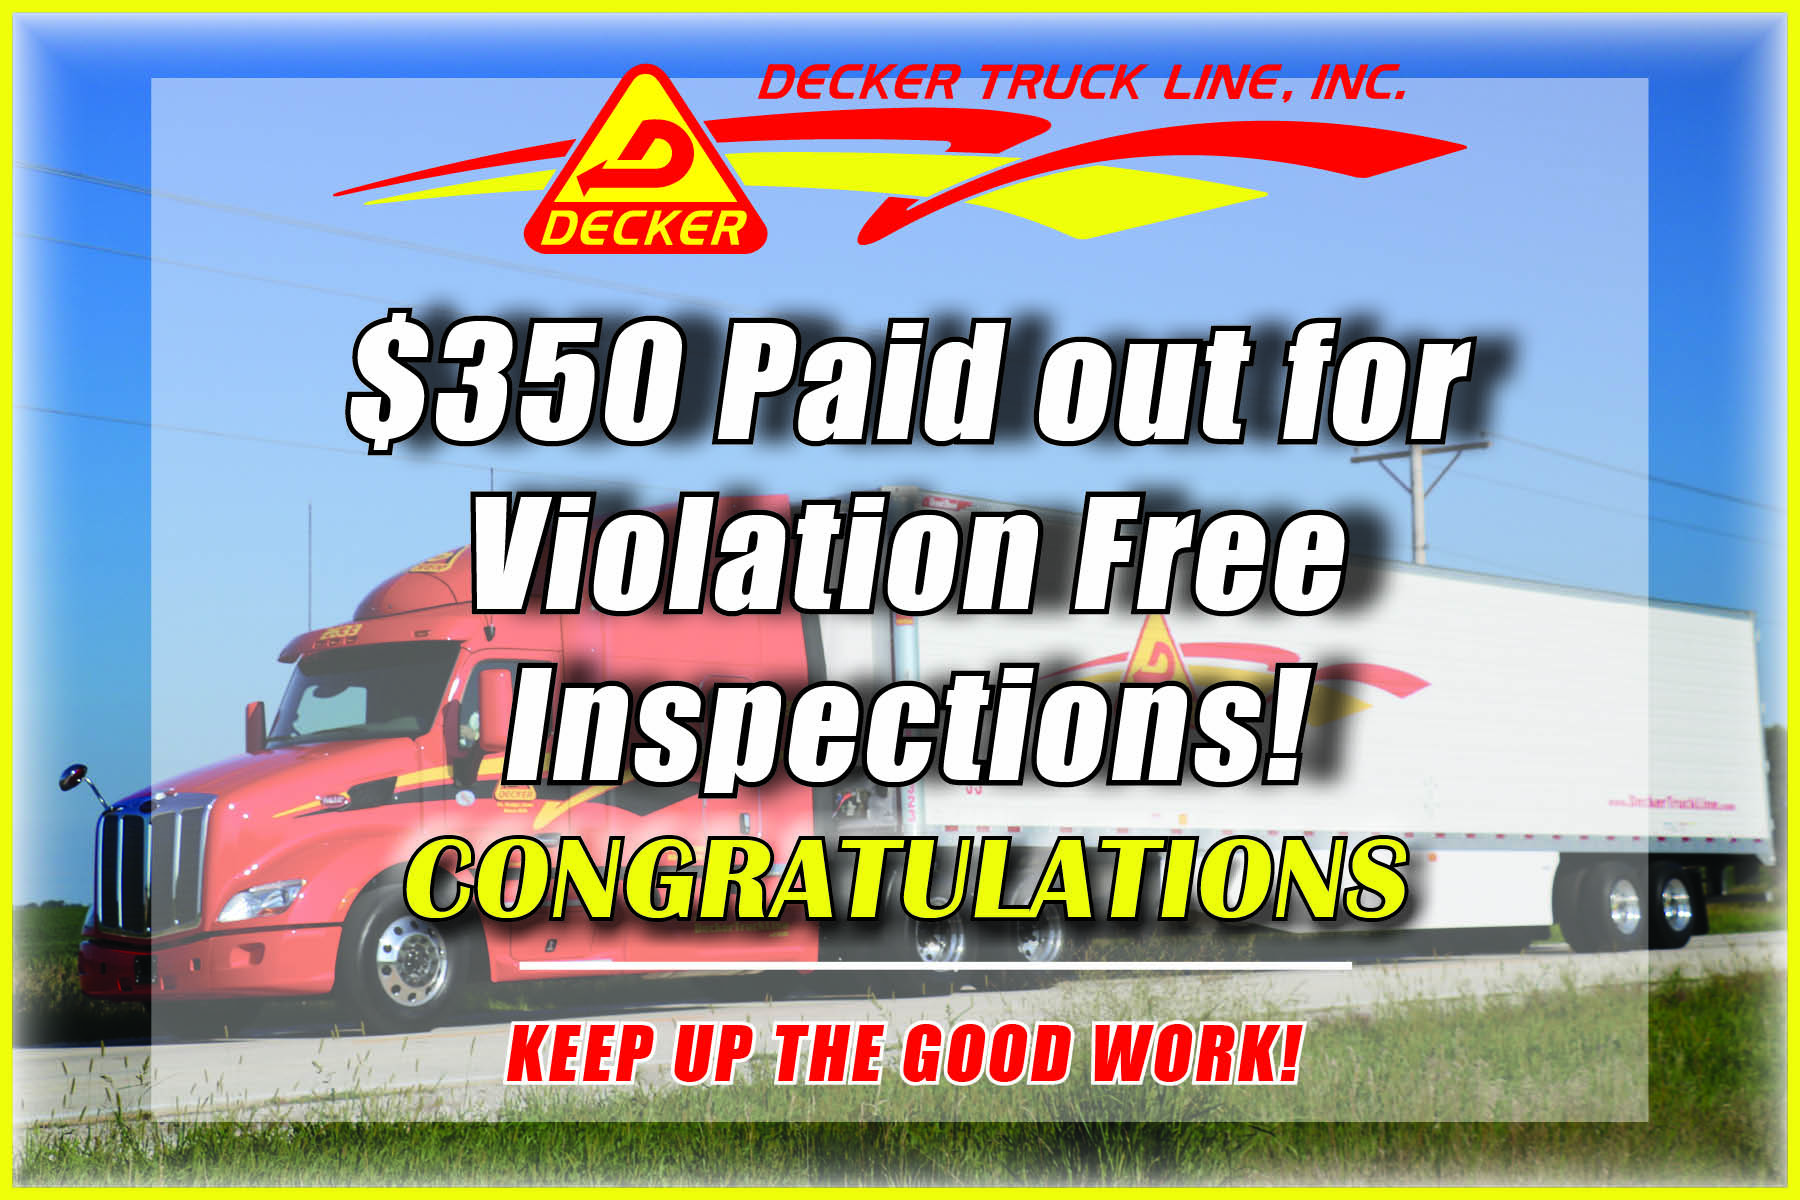 Inspections Bonuses 12-14-18 to 12-20-18